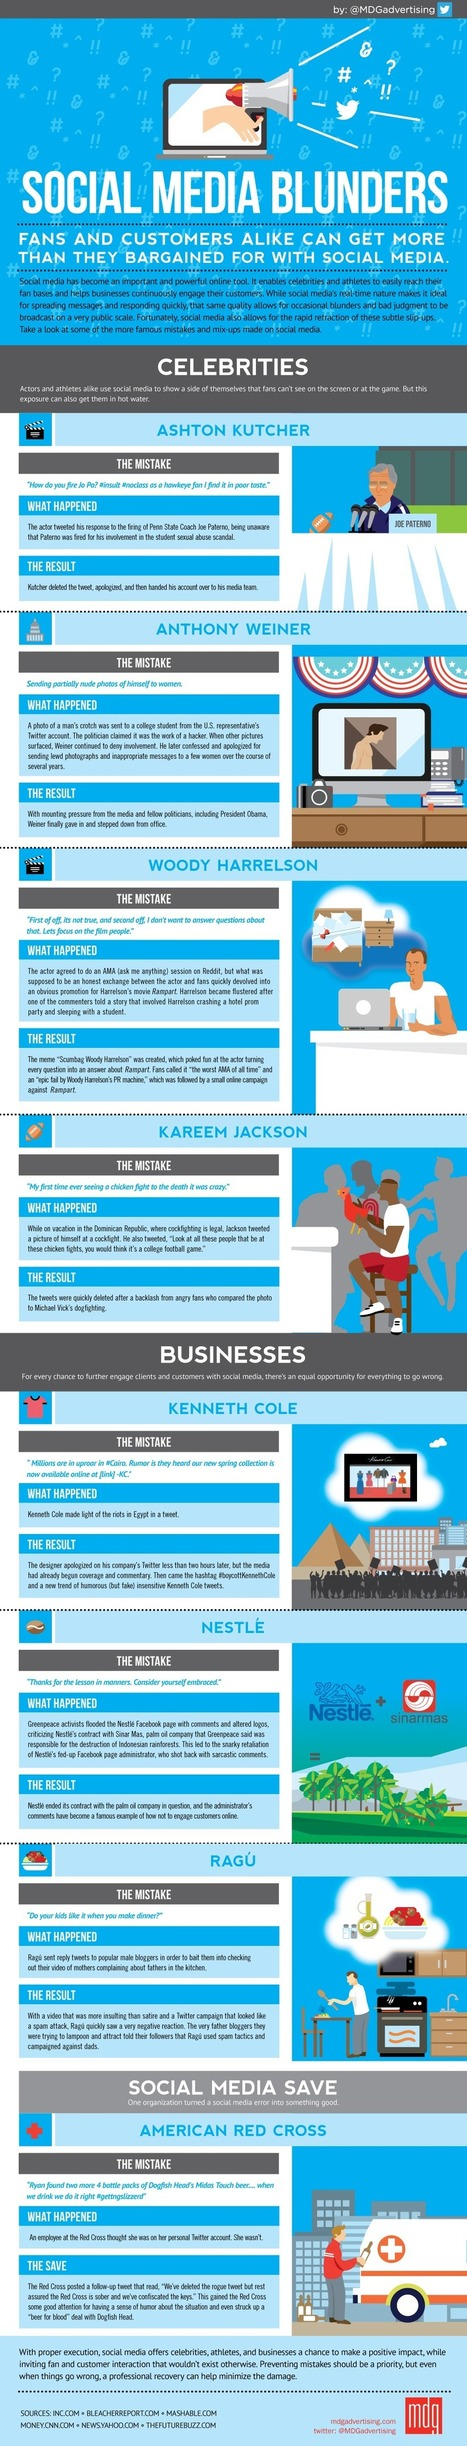 Blunders In Social Media History [Infographic] | DV8 Digital Marketing Tips and Insight | Scoop.it